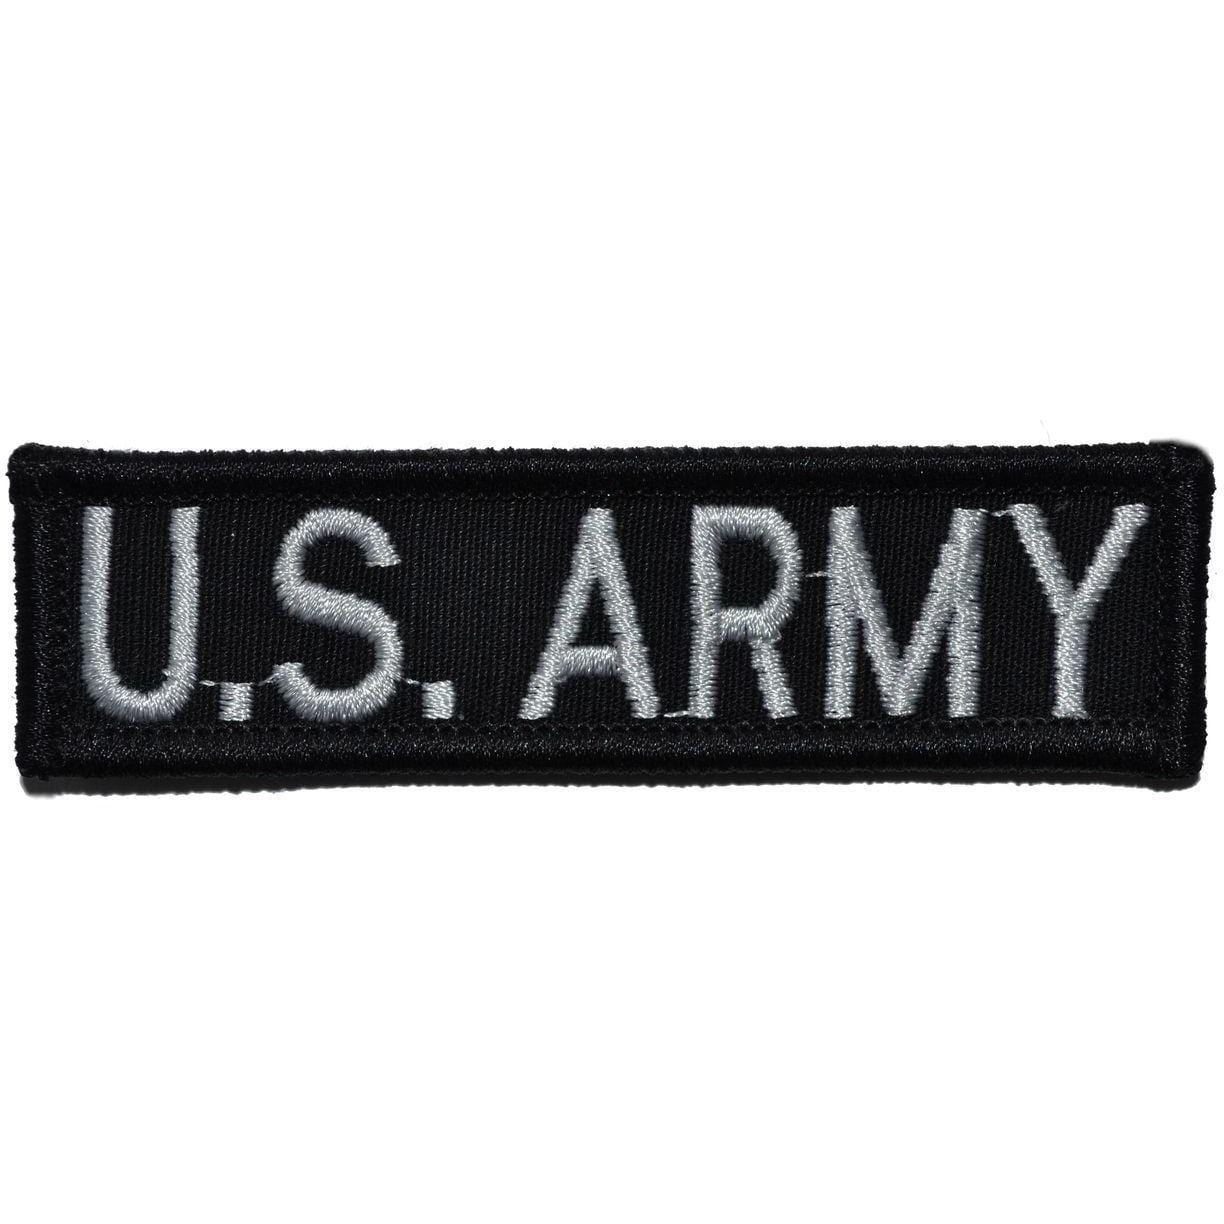 Tactical Gear Junkie Patches Black U.S. Army - 1x3.75 Patch